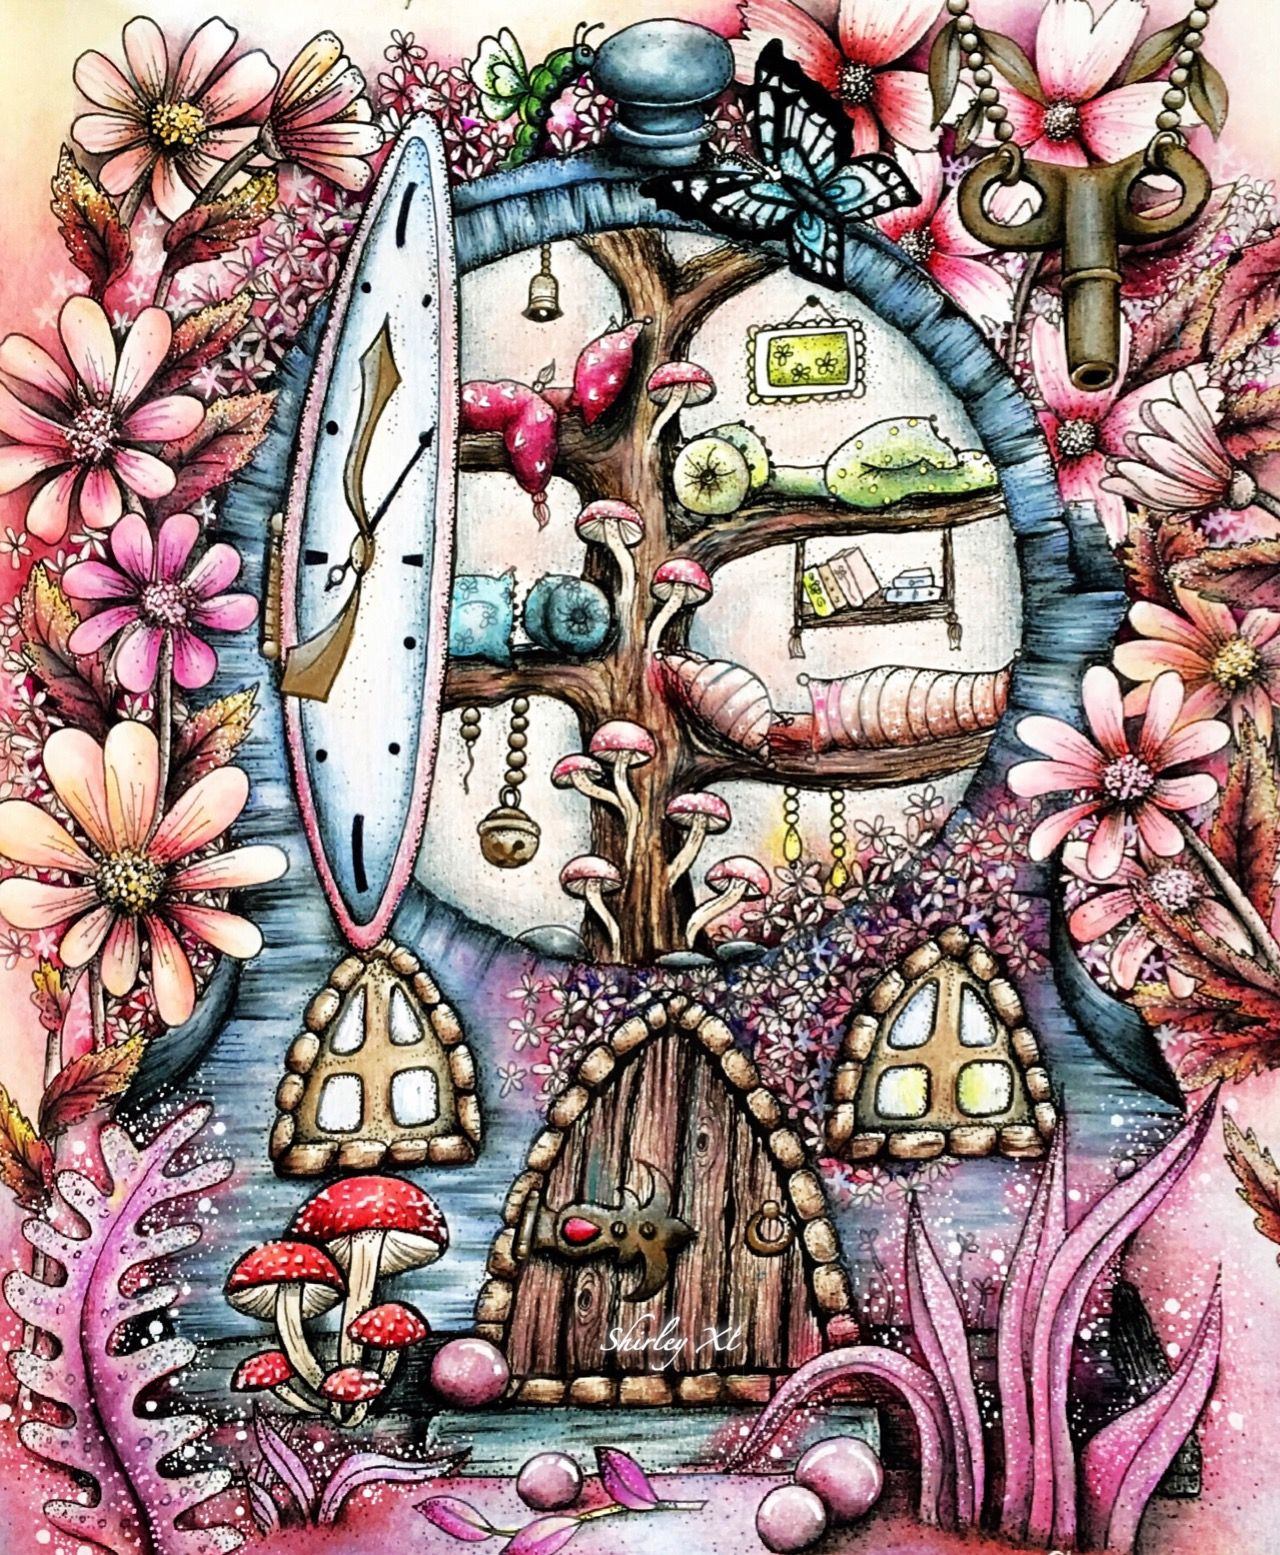 Pin On Adult Coloring Book K M Magical Delights Carovne Lahodnosi